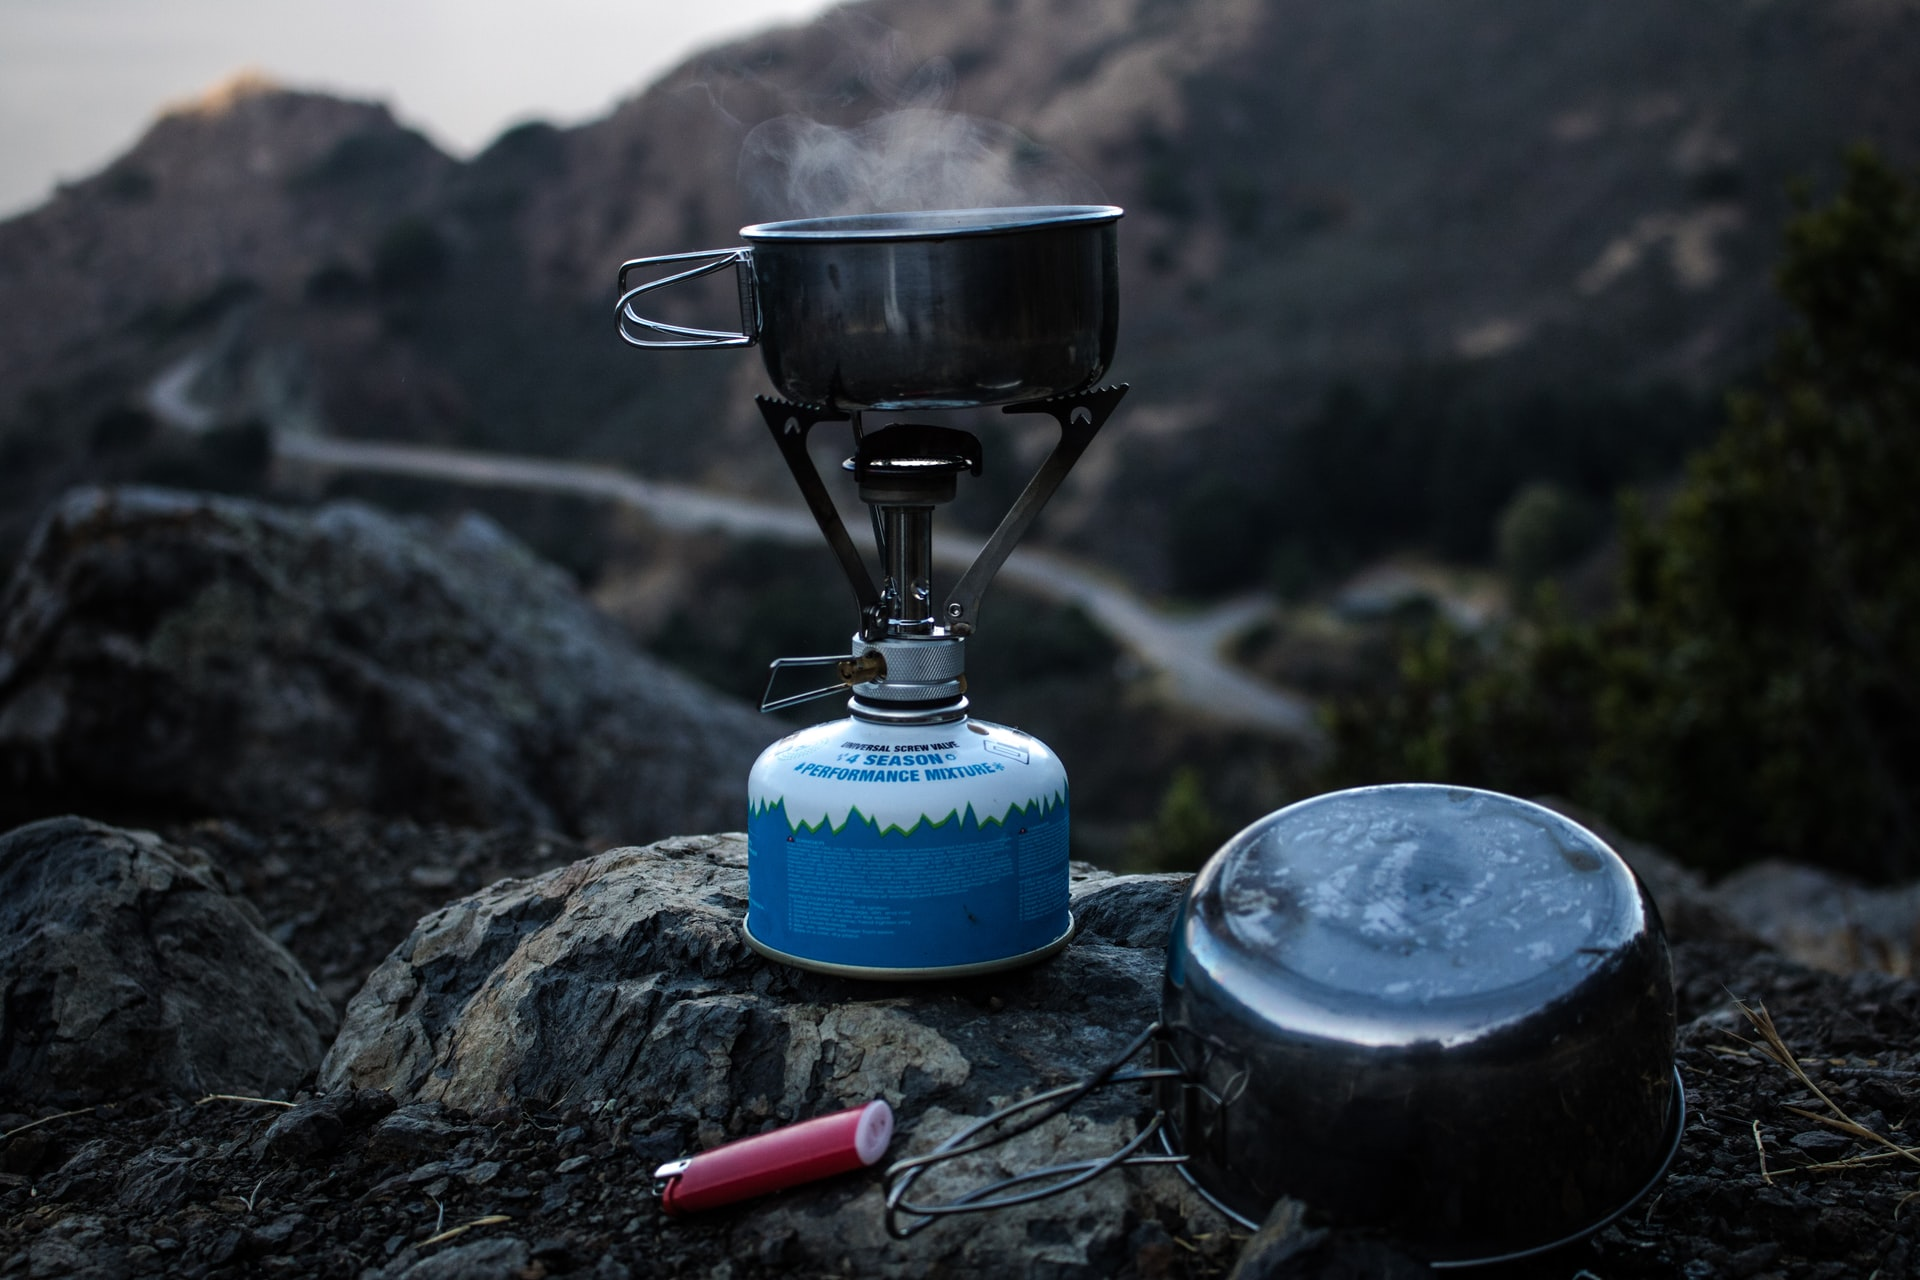 A good camp stove. Always a key item in any backpacking packing list